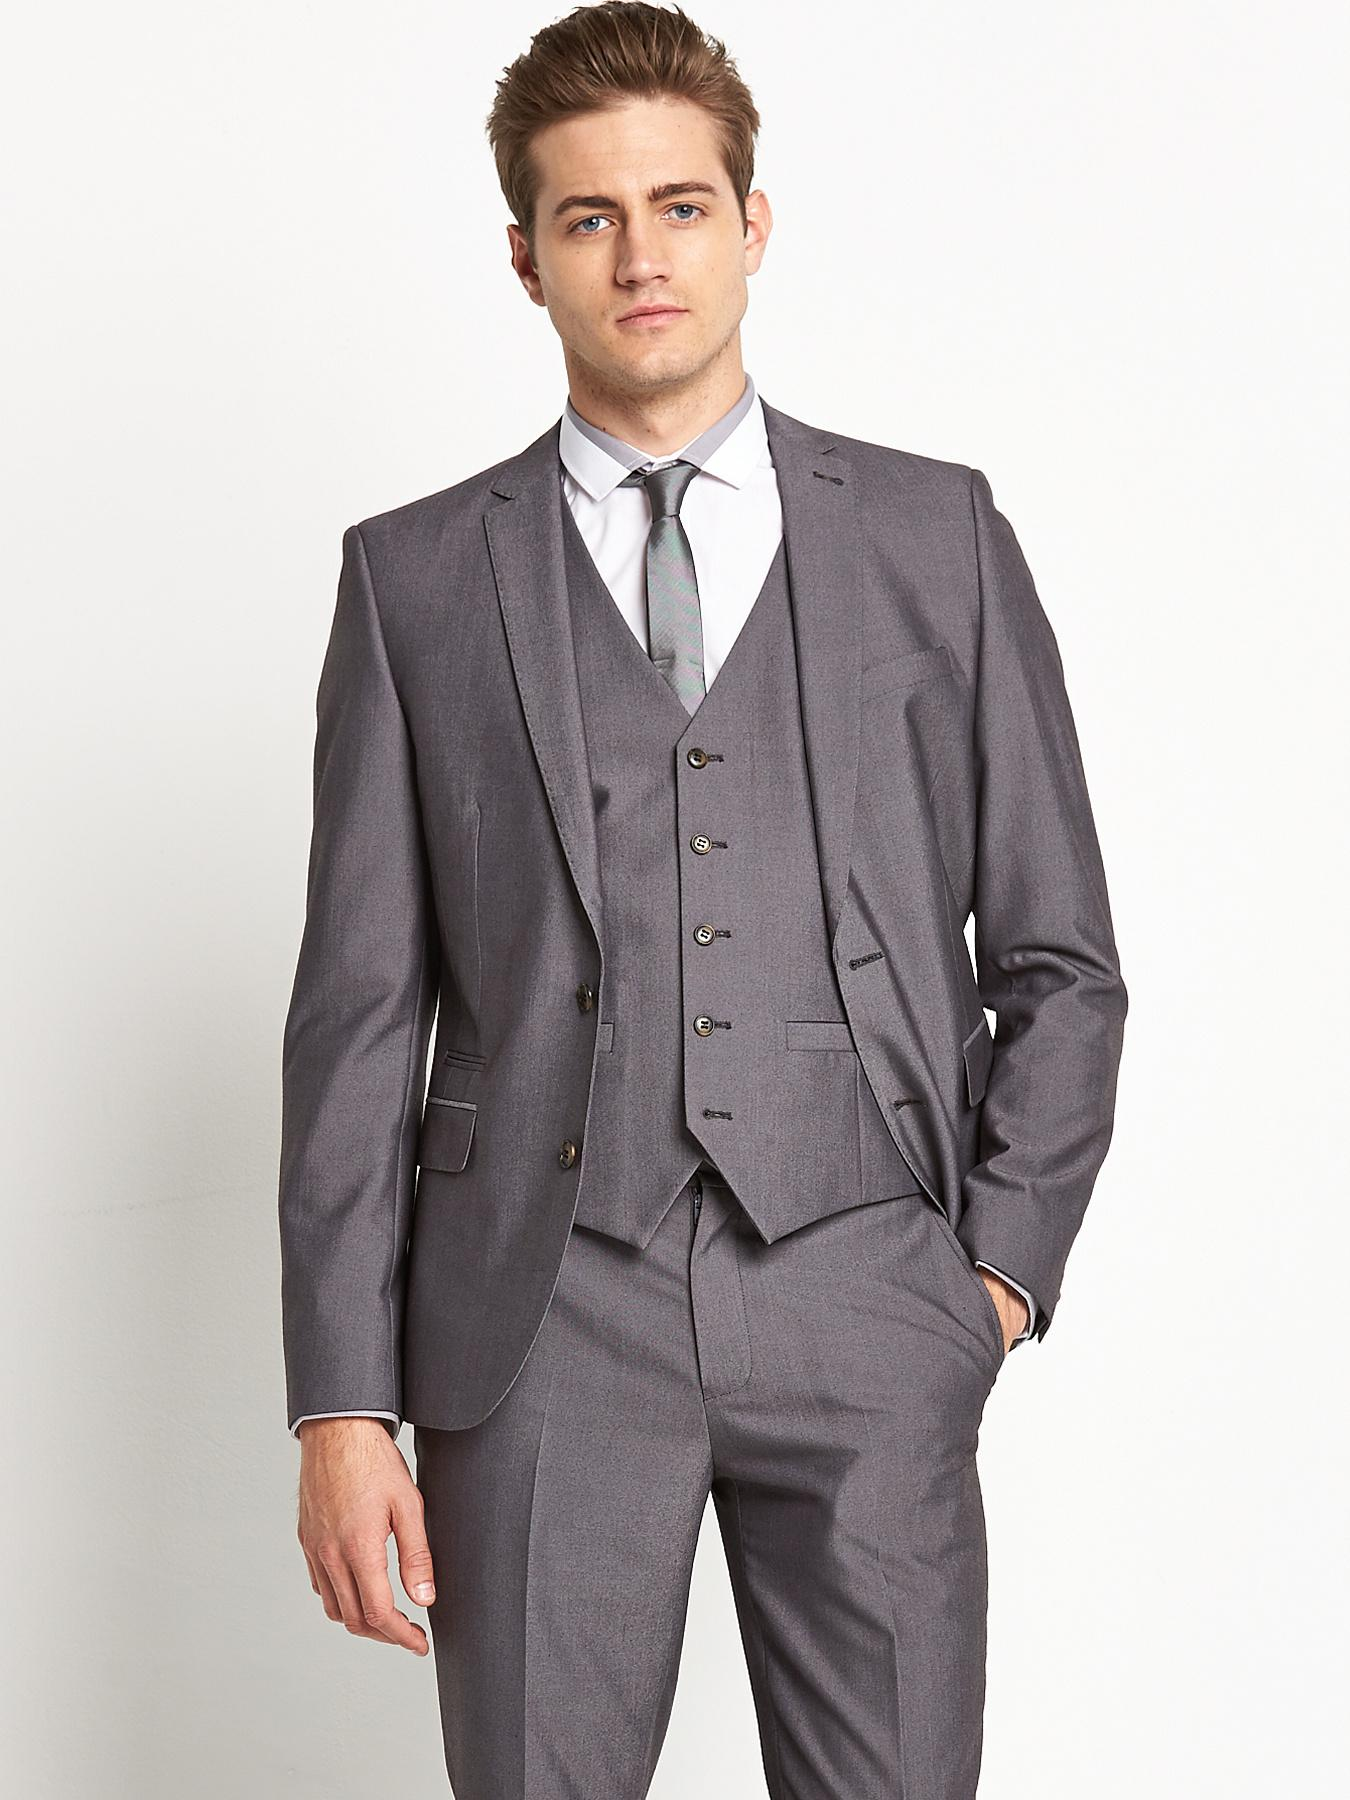 Mens Tonic SB3 Peak Lapel Suit Jacket, Grey